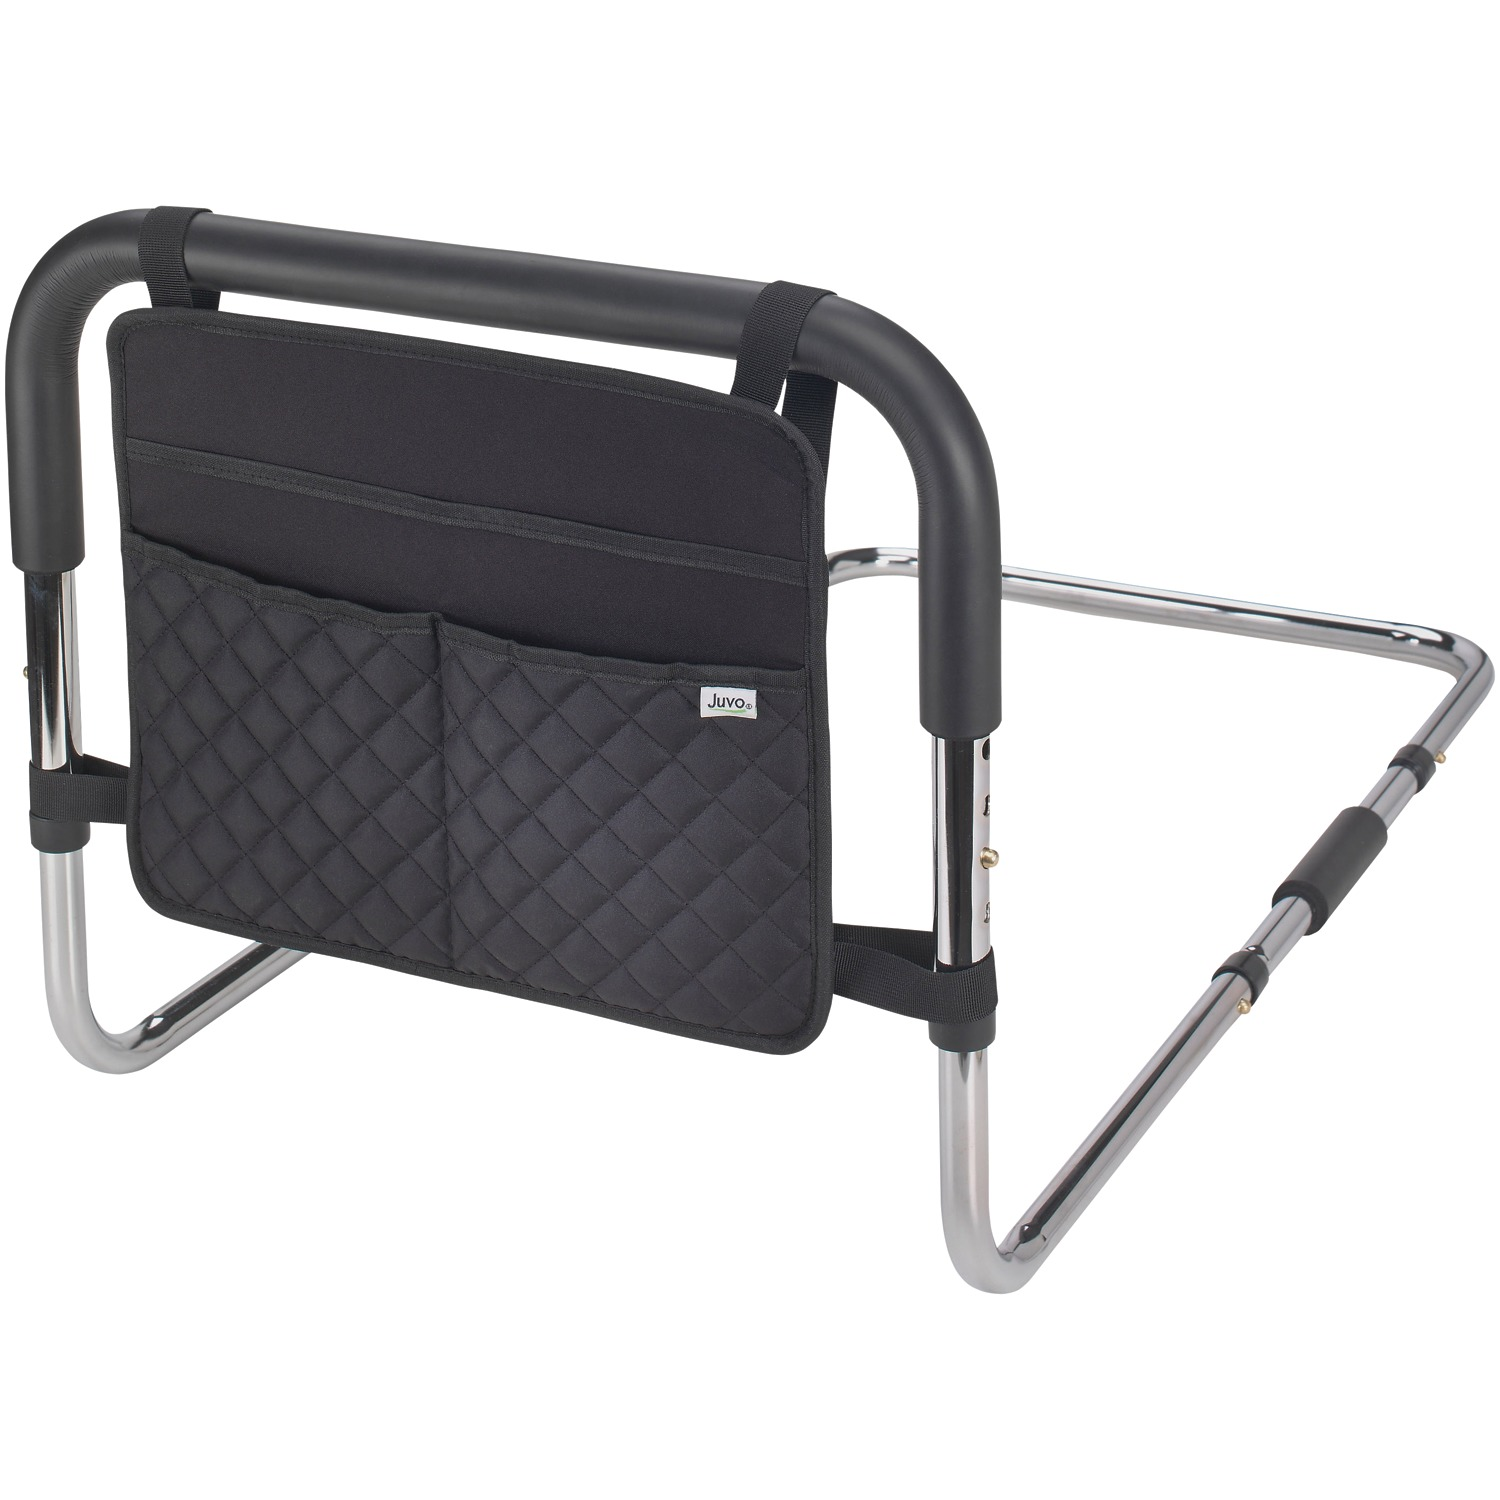 Juvo Products BSR101 Bed Safety Rail & Caddy